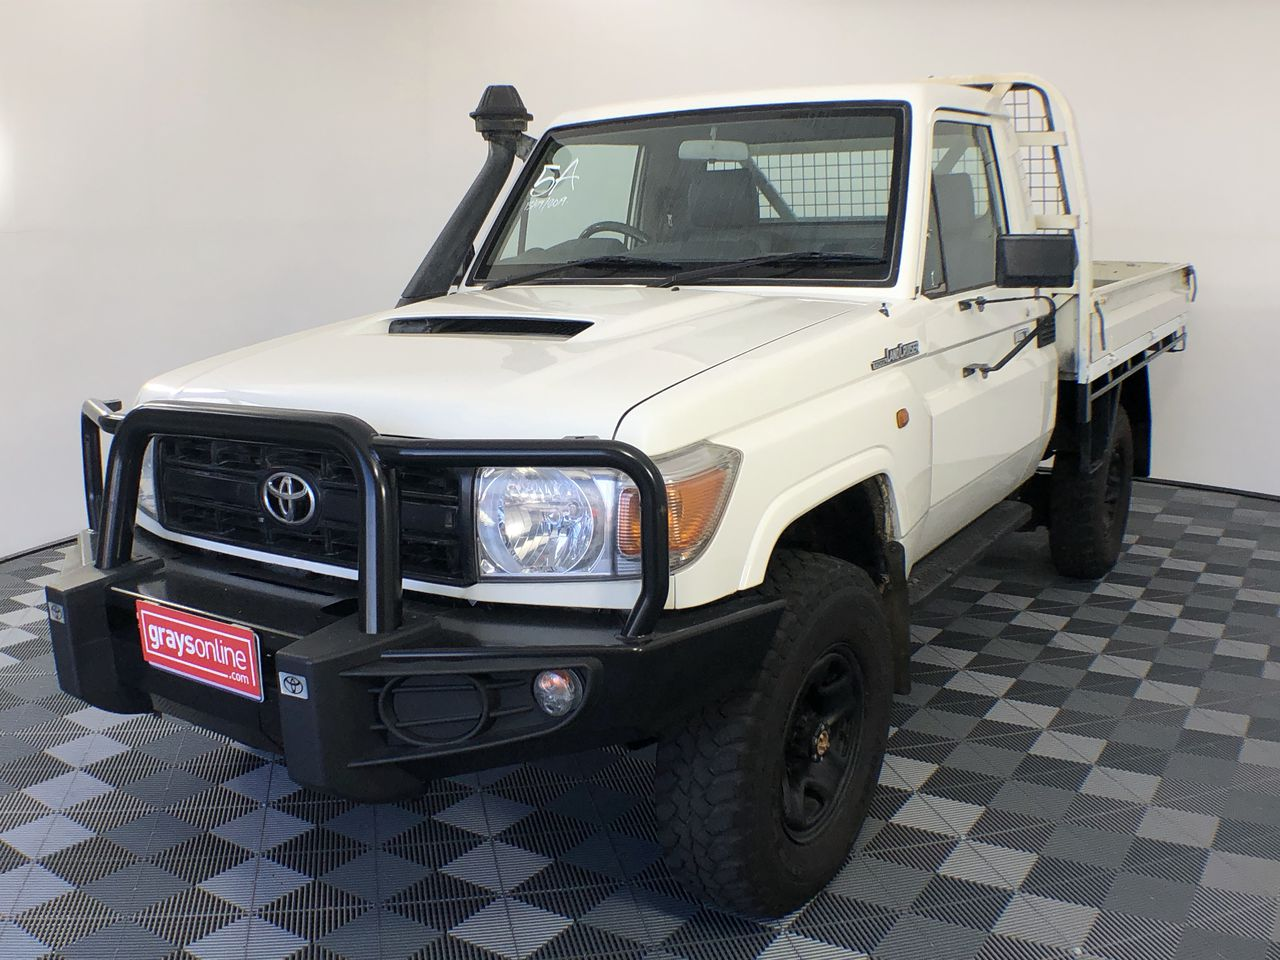 2014 Toyota Landcruiser Workmate (4x4) VDJ79R T/Diesel Manual Cab Chassis